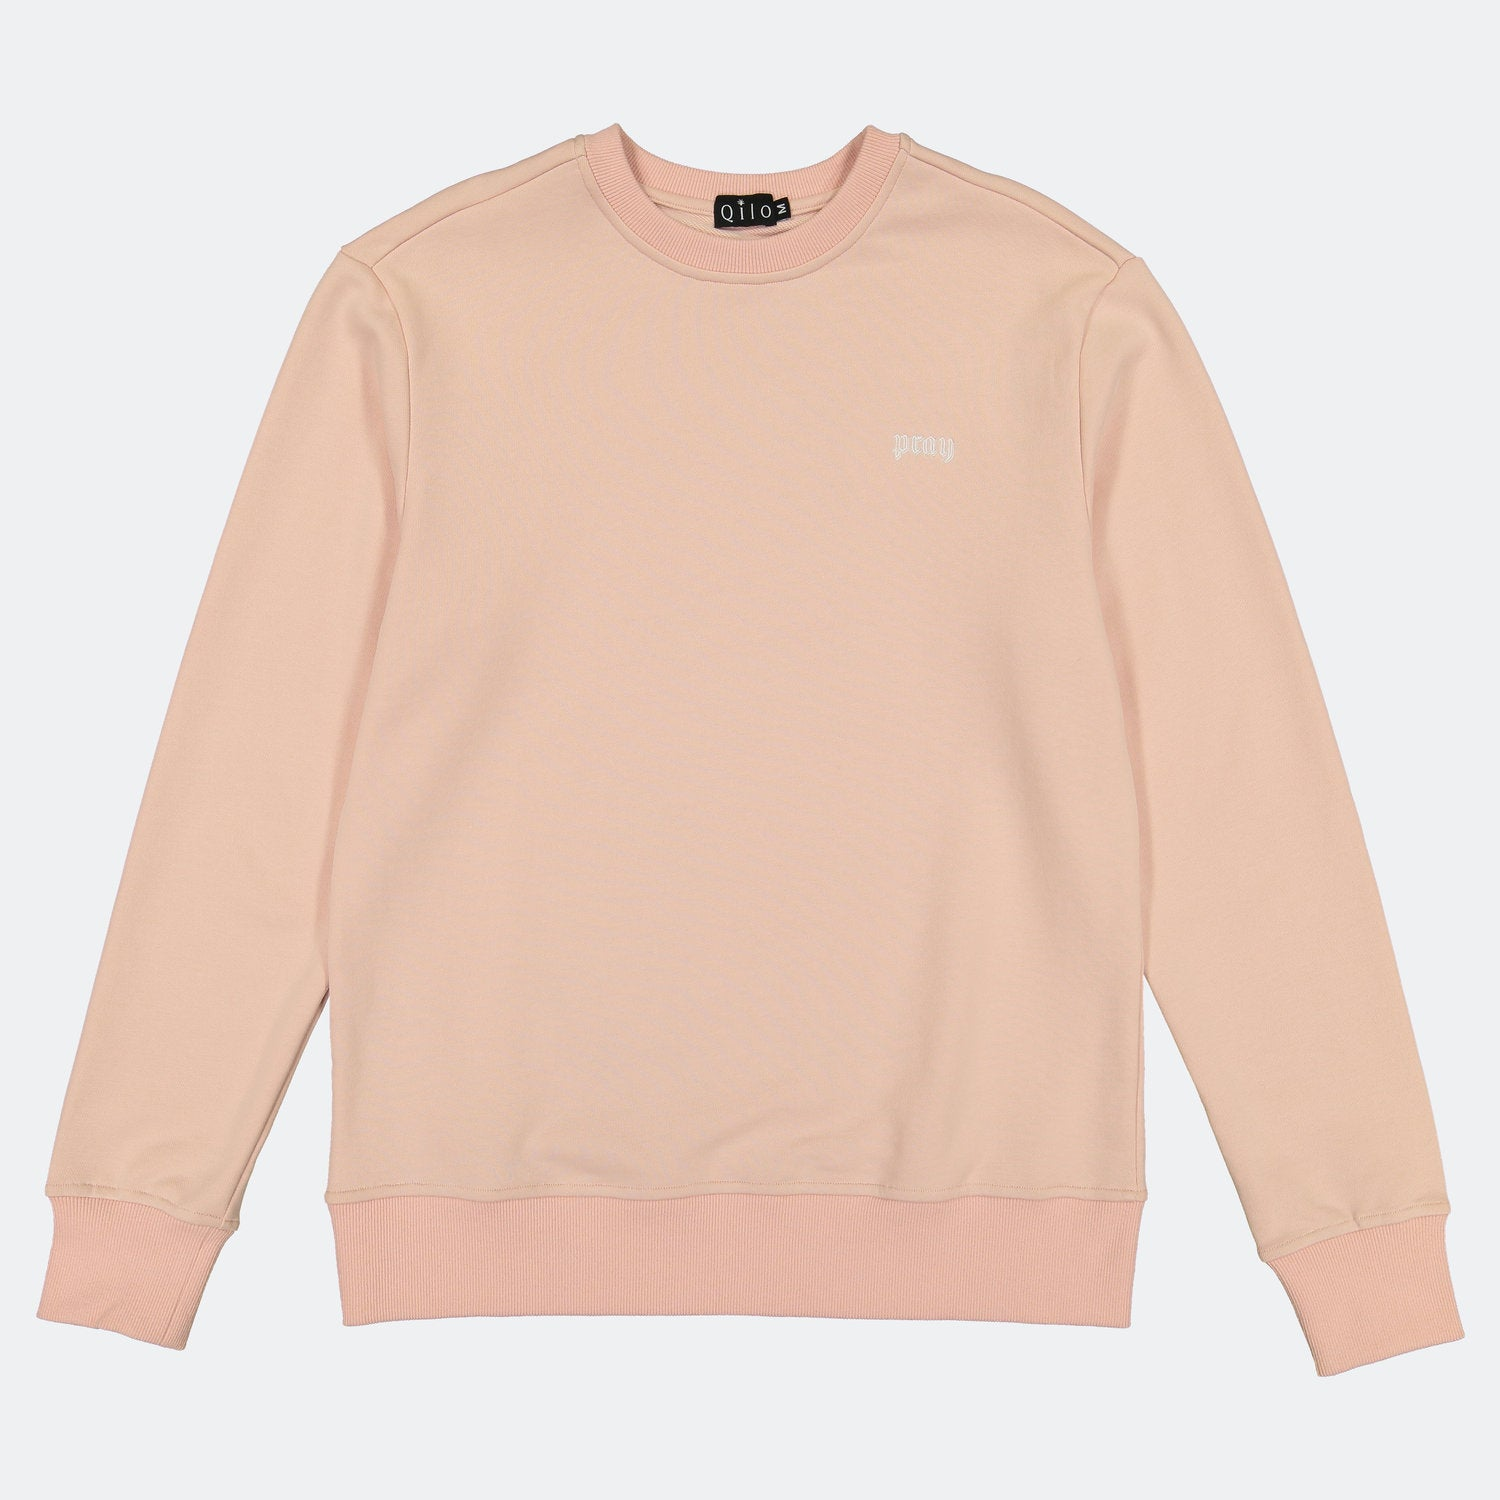 "Qilo - ""Pray"" Sweatshirt in Blush"